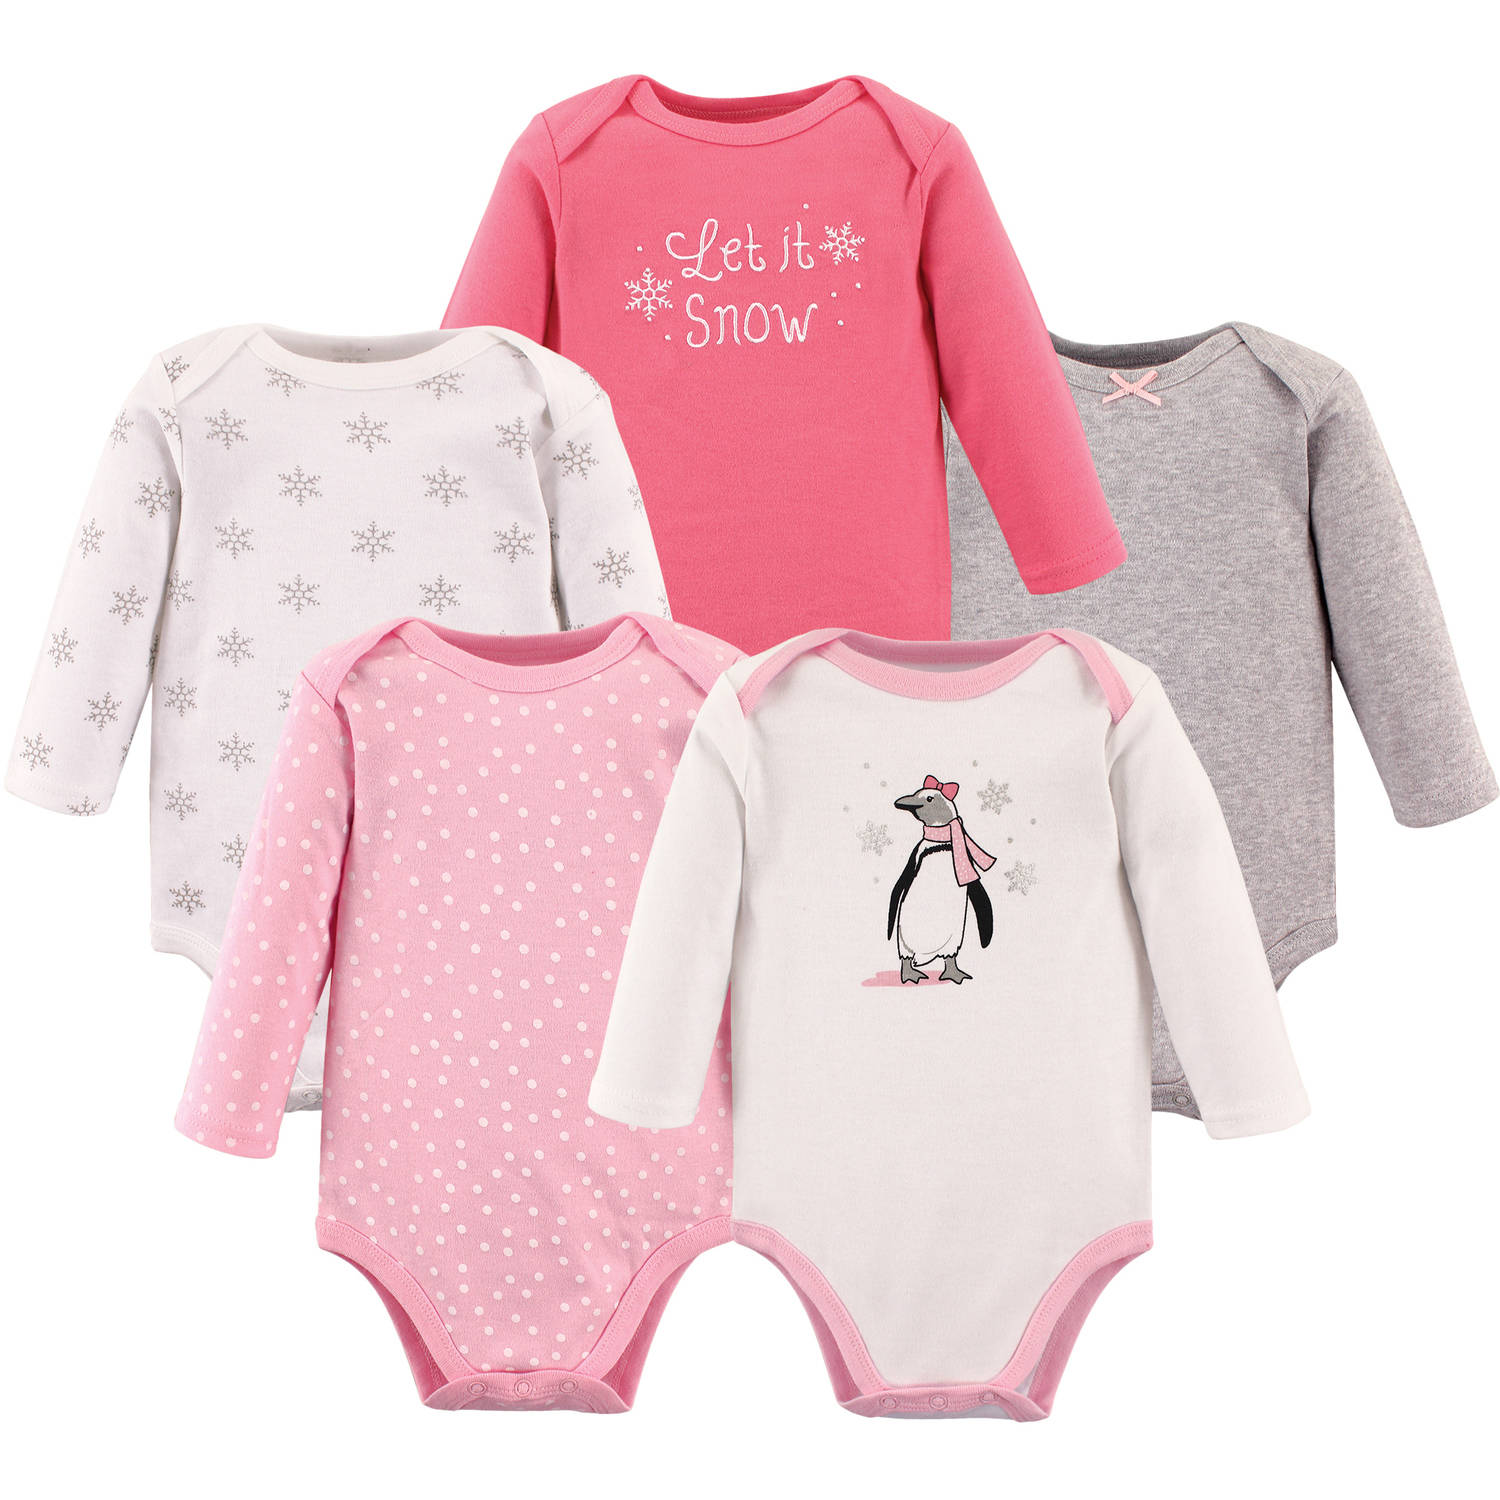 5-Pack Hudson Baby Girl Bodysuits Unicorn 5-Pack